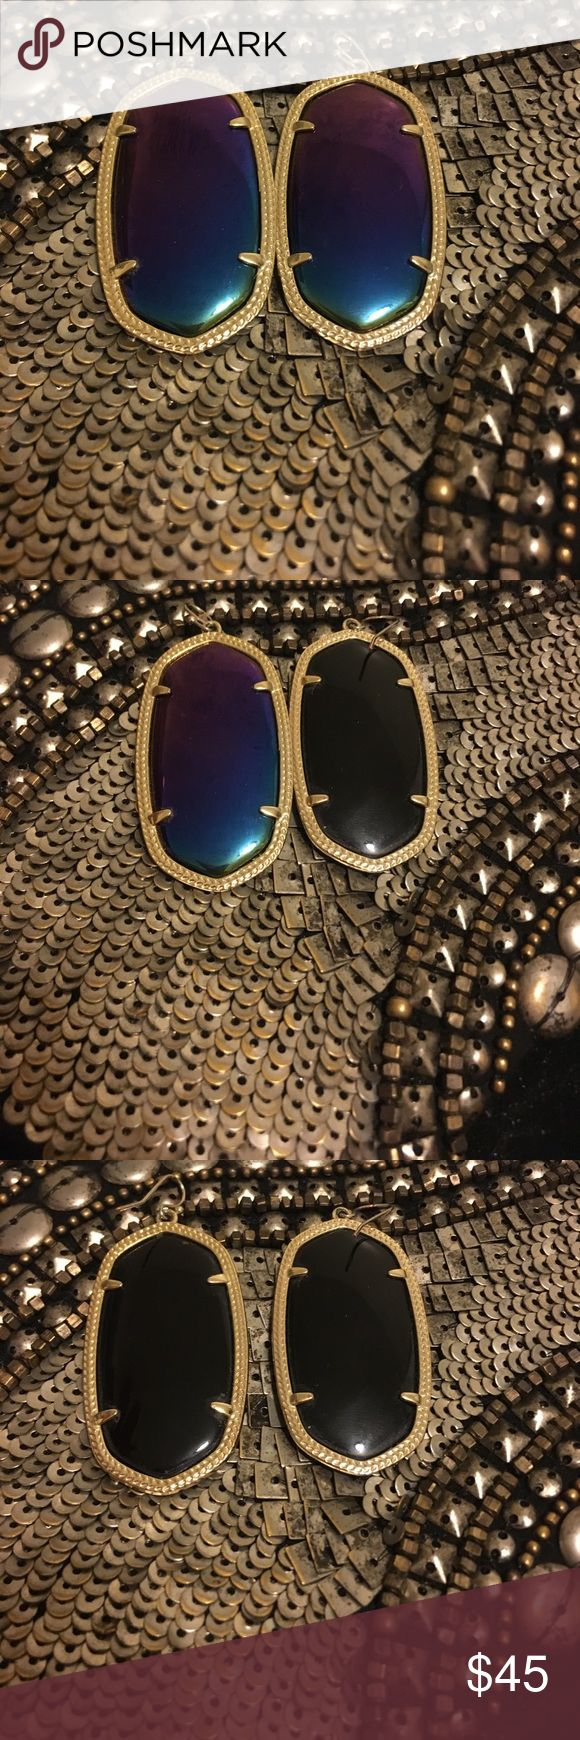 Kendra Scott Iridescent Danielle Earrings Beautiful iridescent Kendra Scott Danielle earrings in EUC! They're a gorgeous iridescent purple/green/blue on one side and black on the other. Kendra Scott Jewelry Earrings